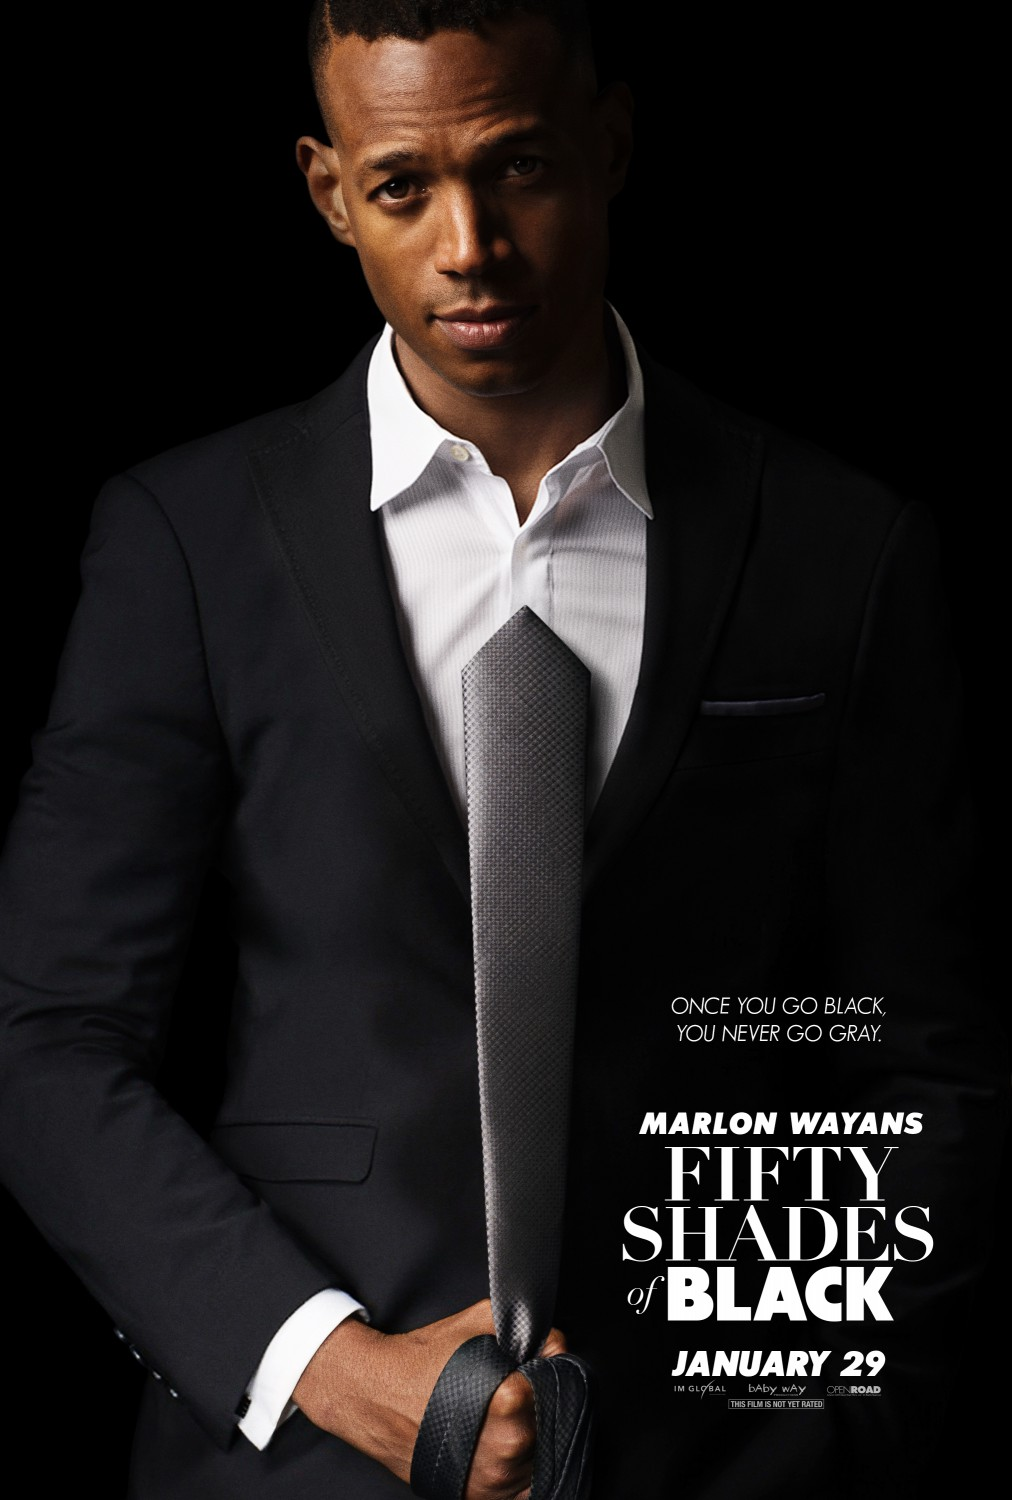 7 - Fifty Shades of Black